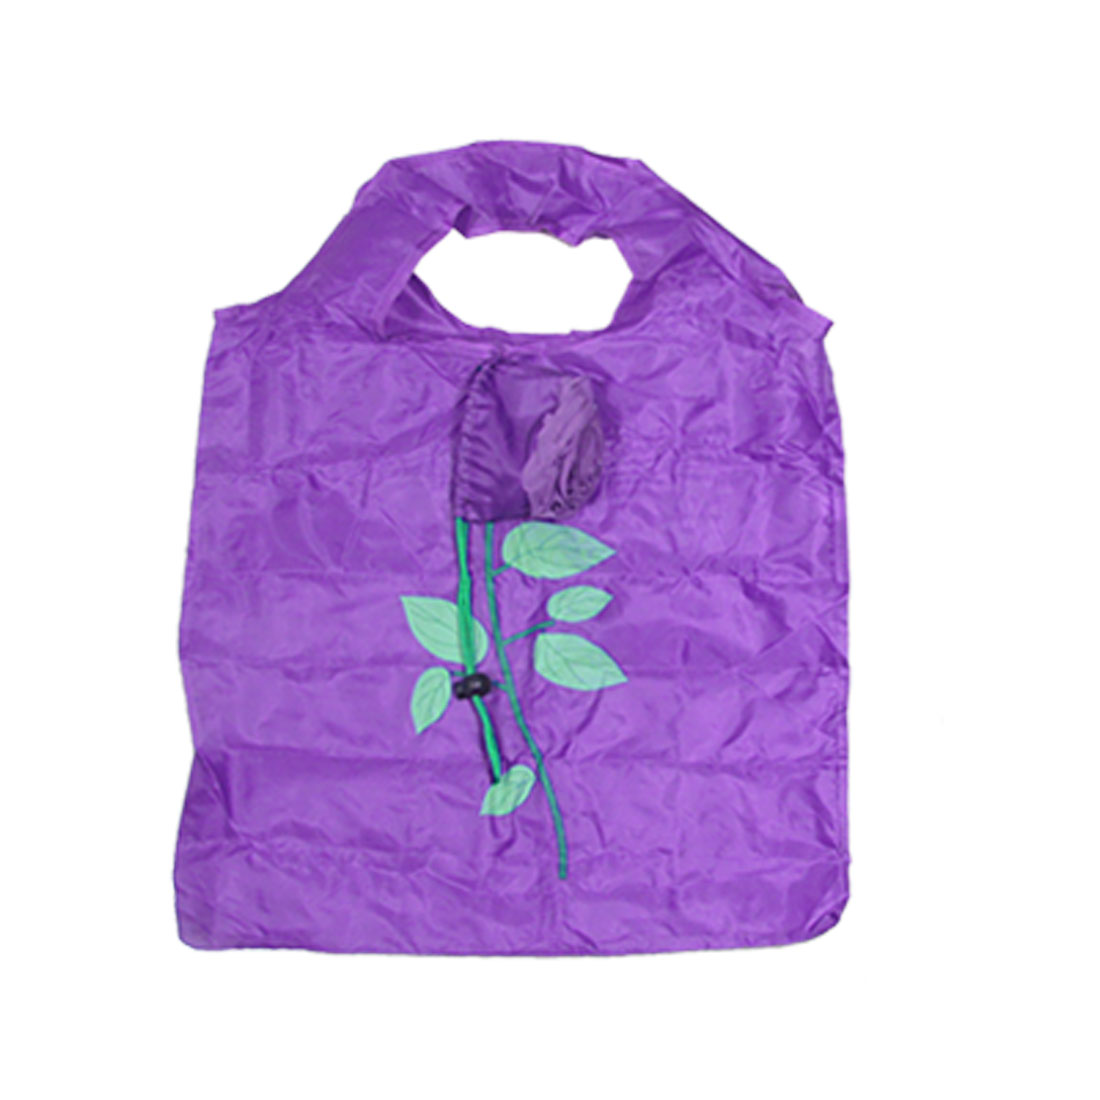 Supermarket Shopping Nylon Purple Rose Tote Handbag